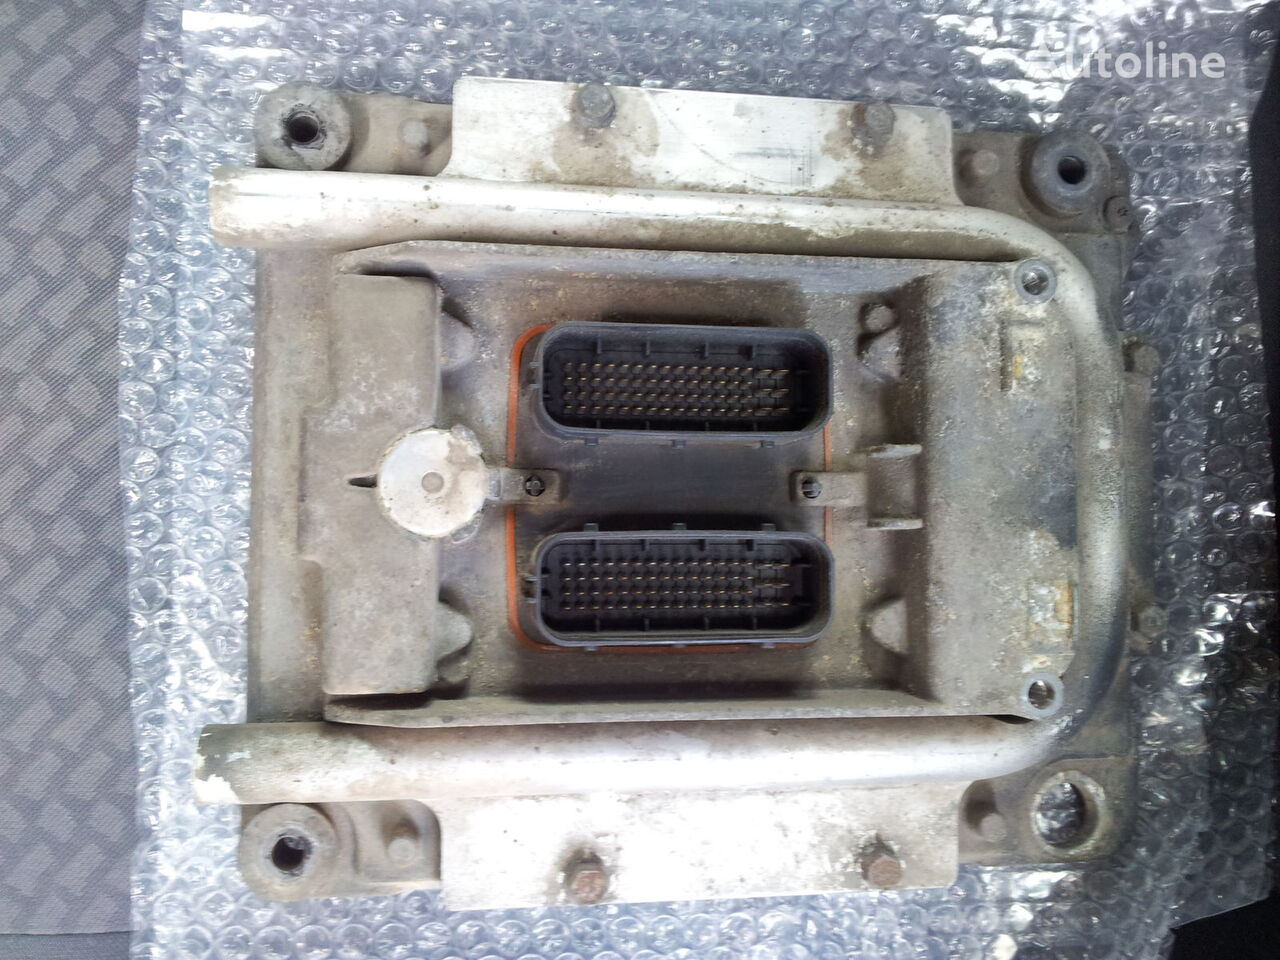 блок за управление RENAULT ECU control unit, engine control unit, 20814604 P01 за влекач RENAULT Premium DXI